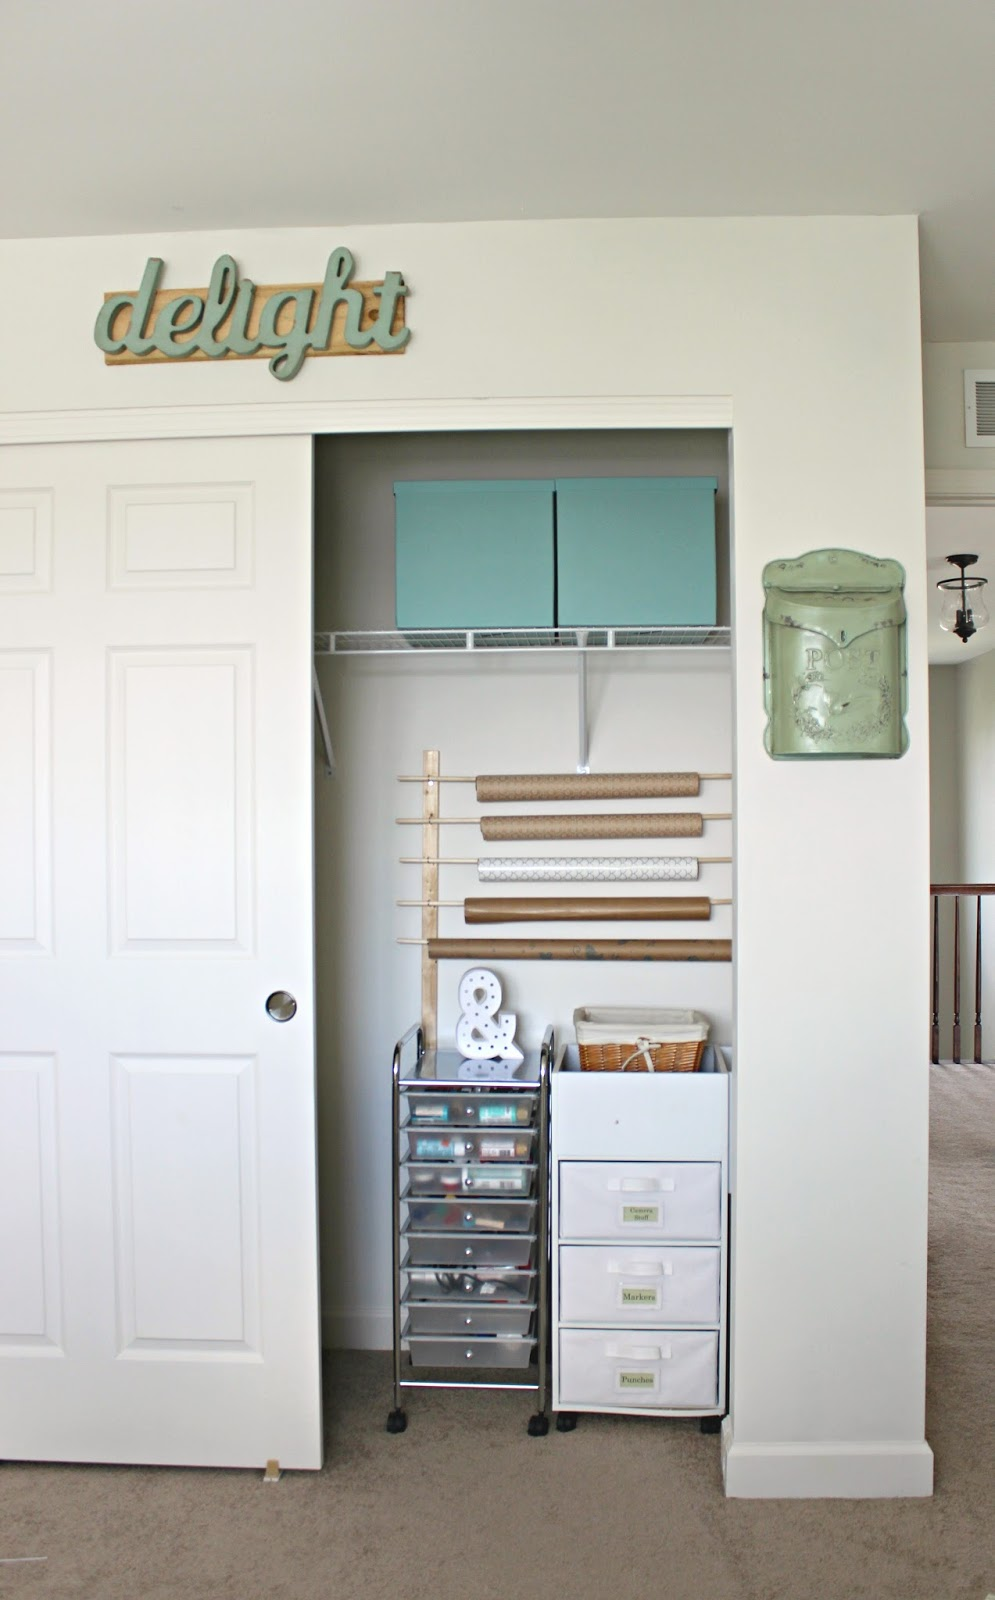 wrapping paper storage closet organizer